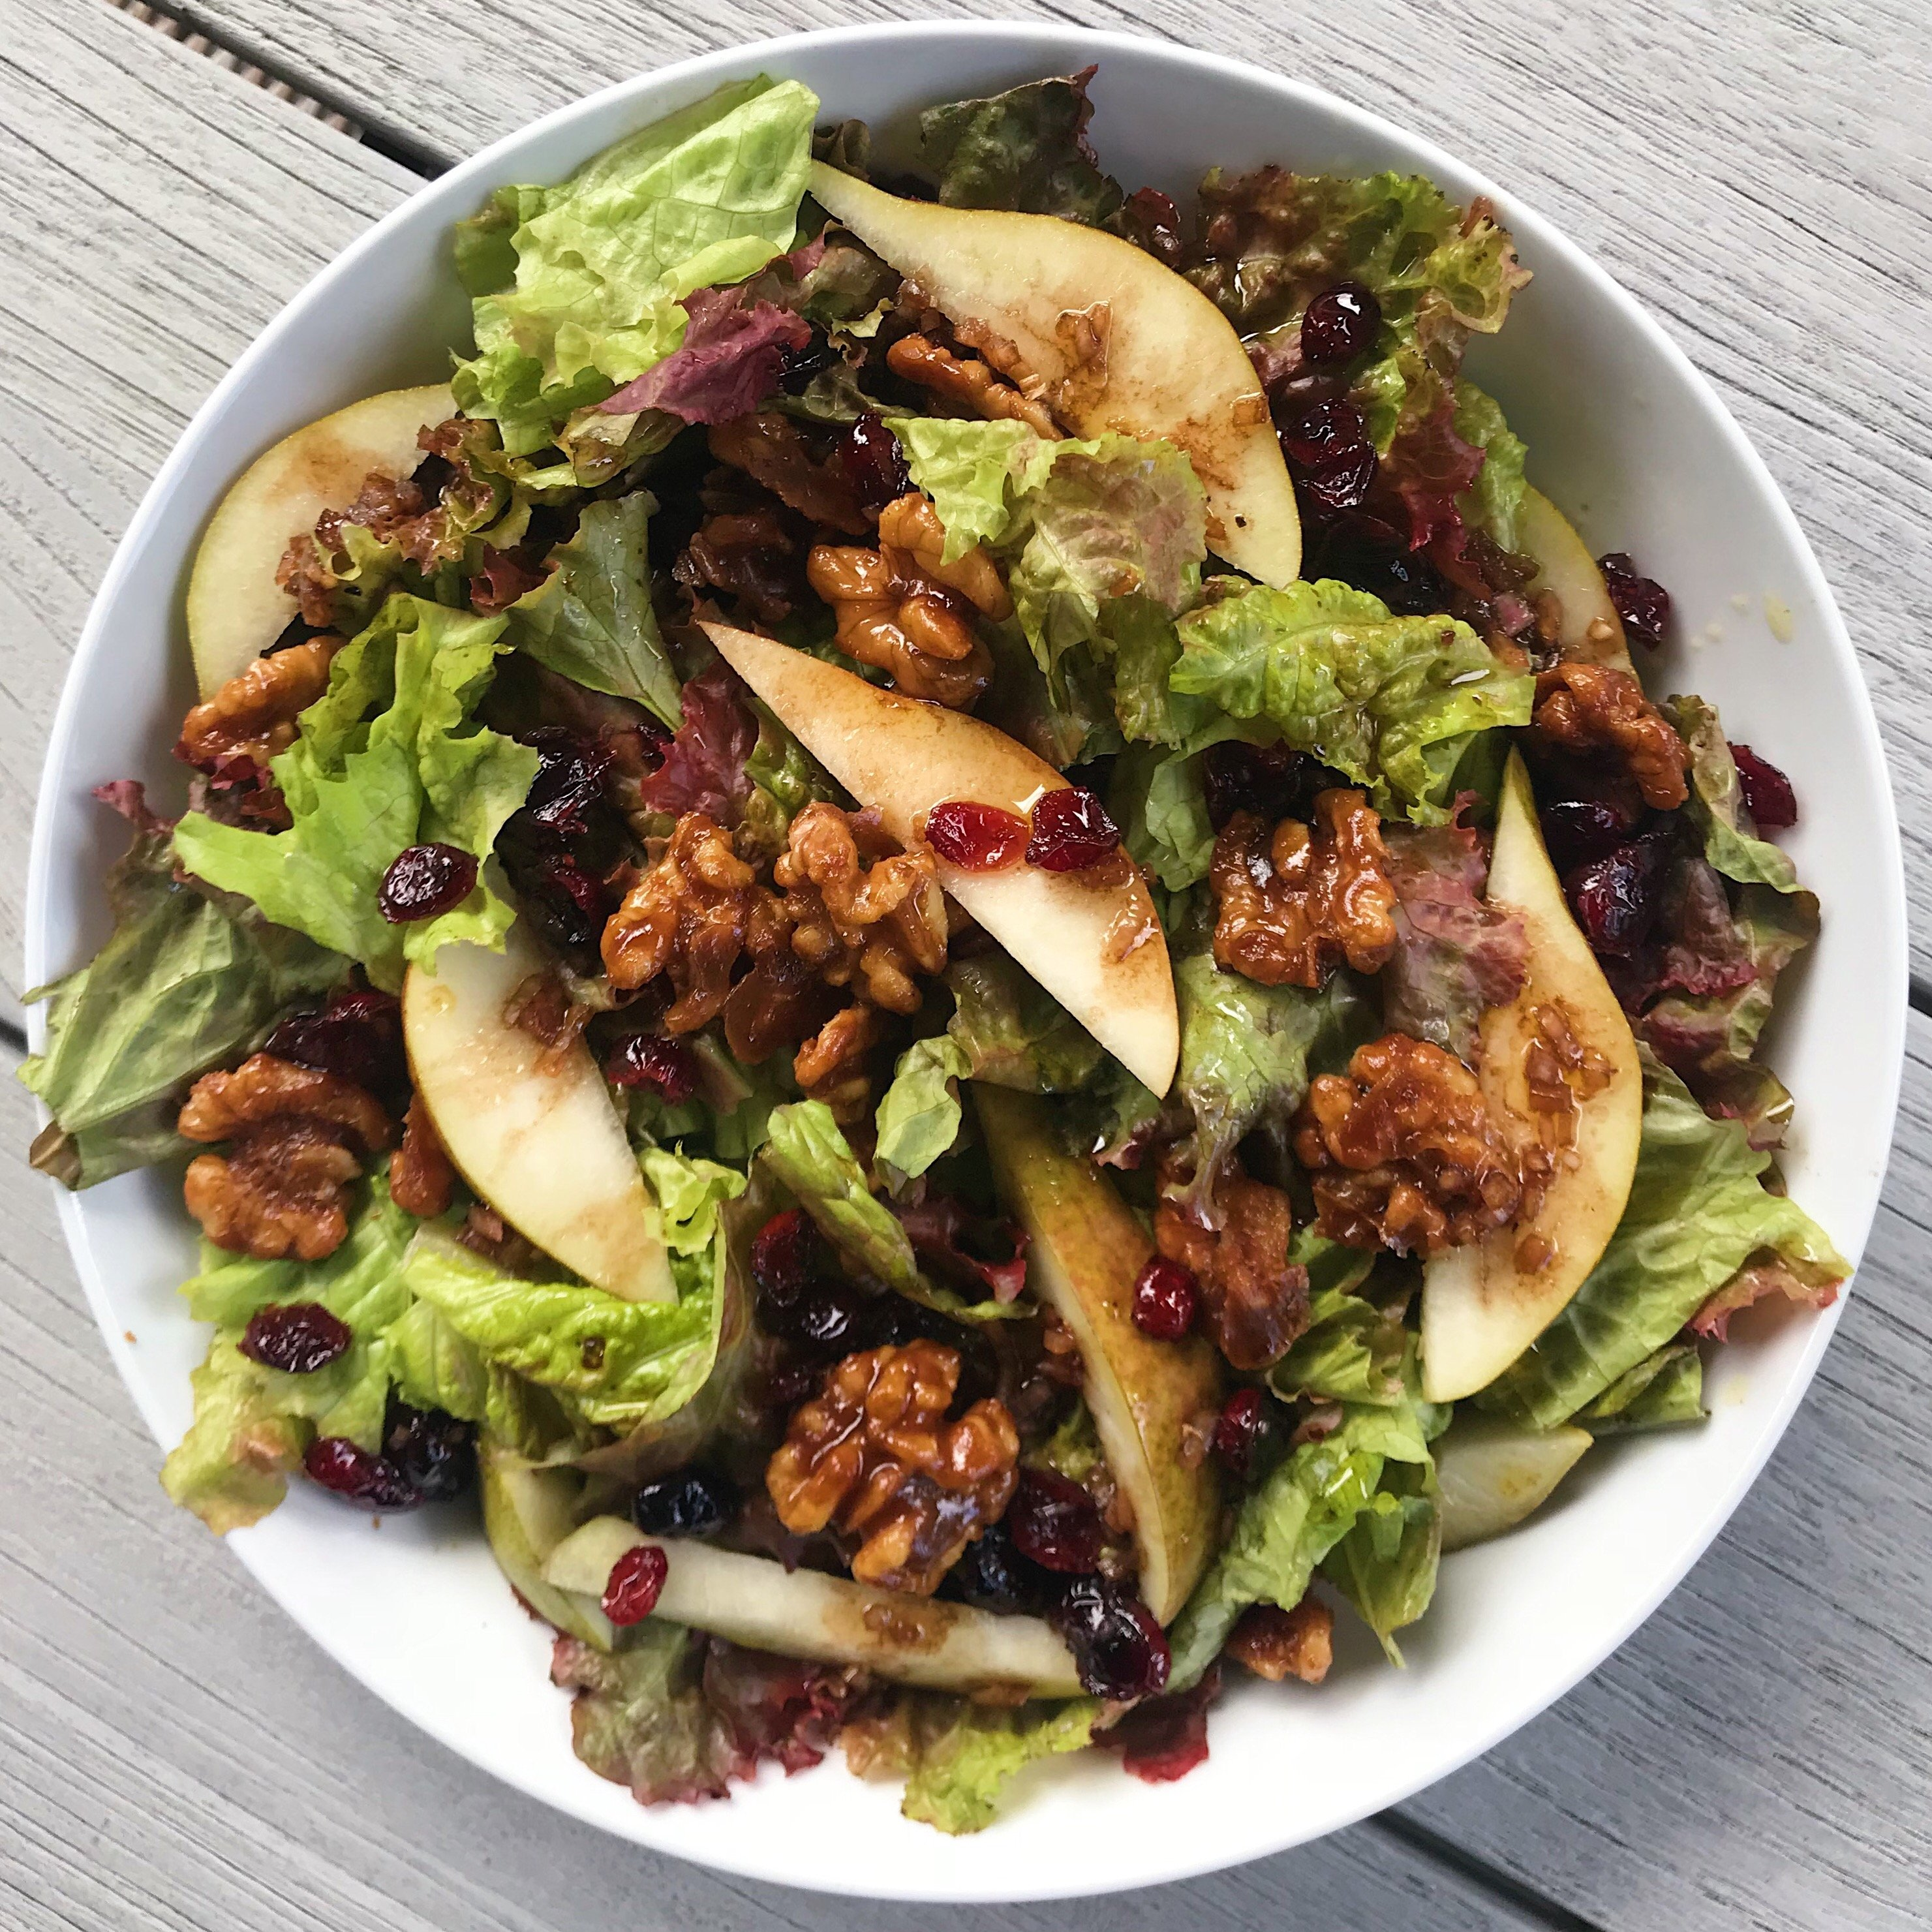 Green Salad with candied walnuts and pears #glutenfree #glutenfreerecipes www.healthygffamily.com